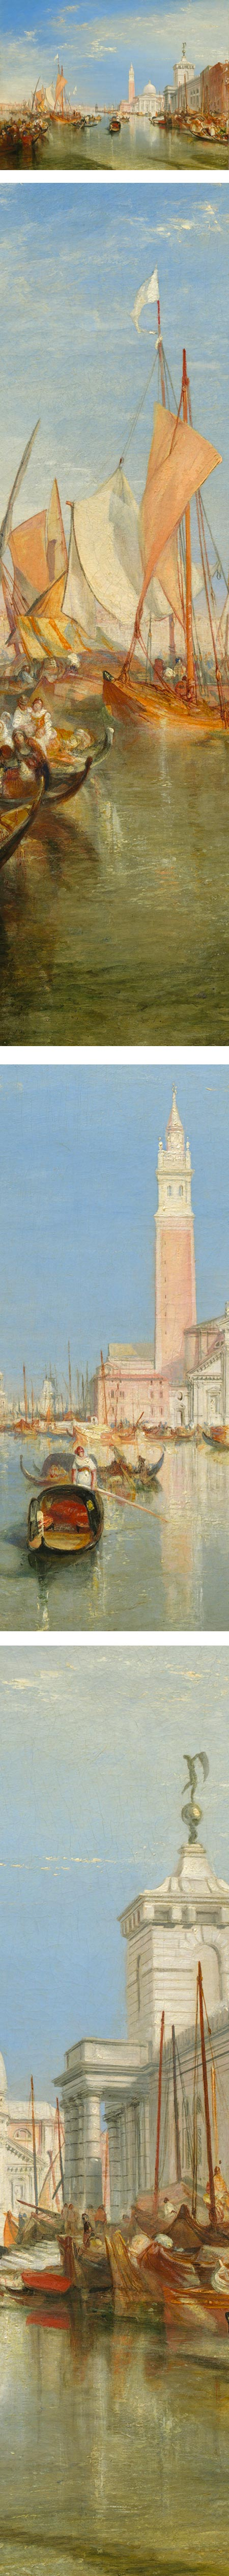 Venice: The Dogana and San Giorgio Maggiore, Joseph Mallord William Turner